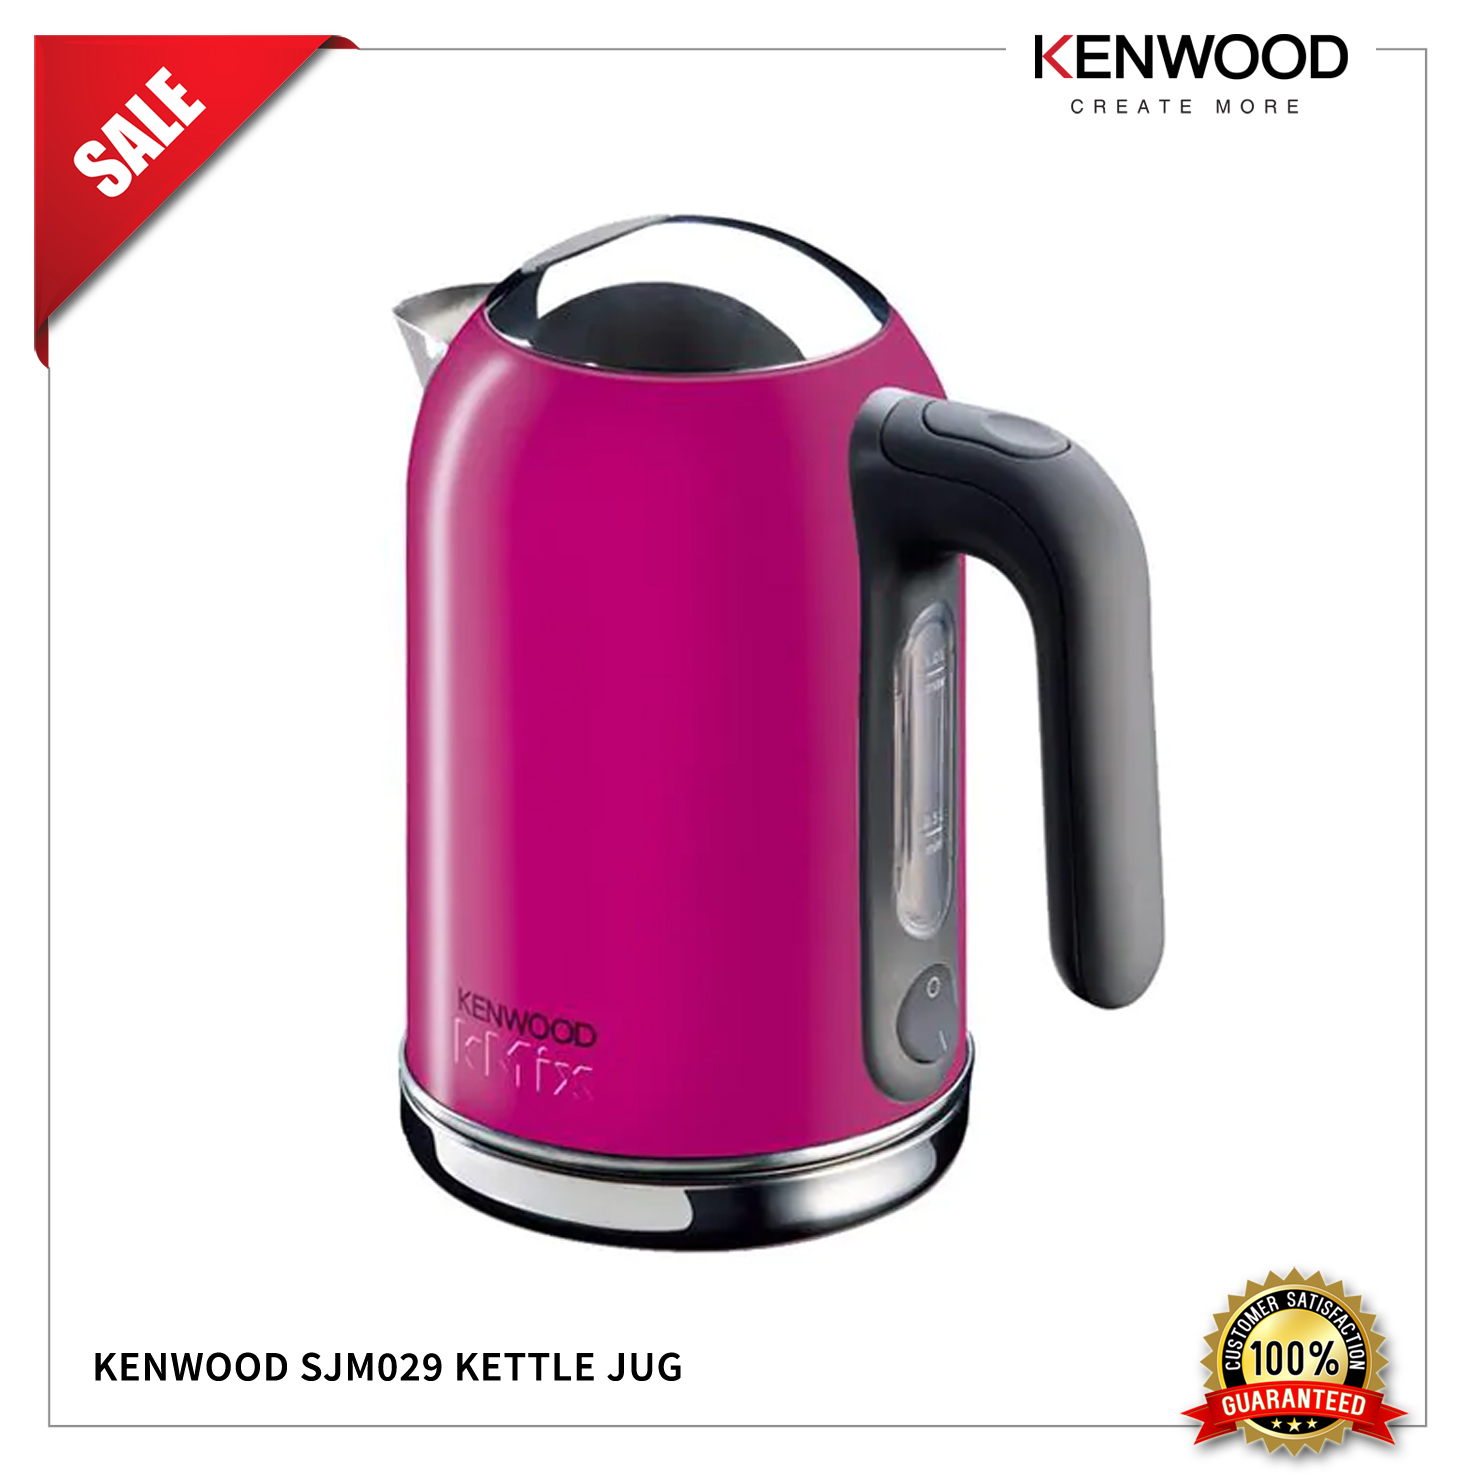 KENWOOD SJM029_KETTLEJUG – REVISI 2